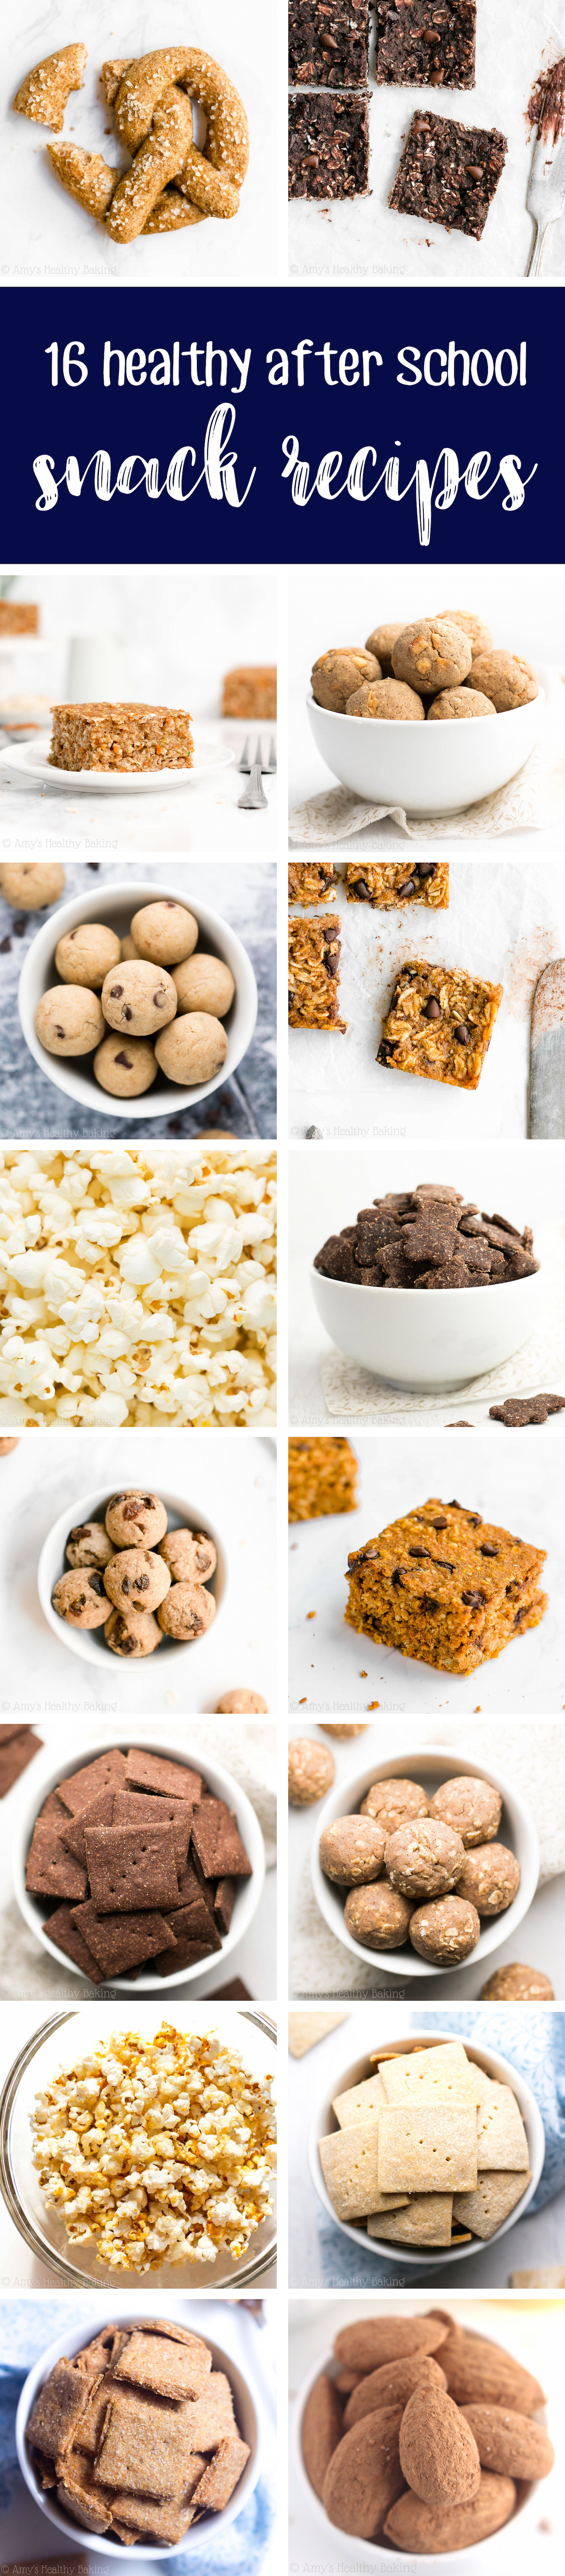 DIY Gluten Free, Low Calorie Healthy After School Snack Recipe Ideas For Kids